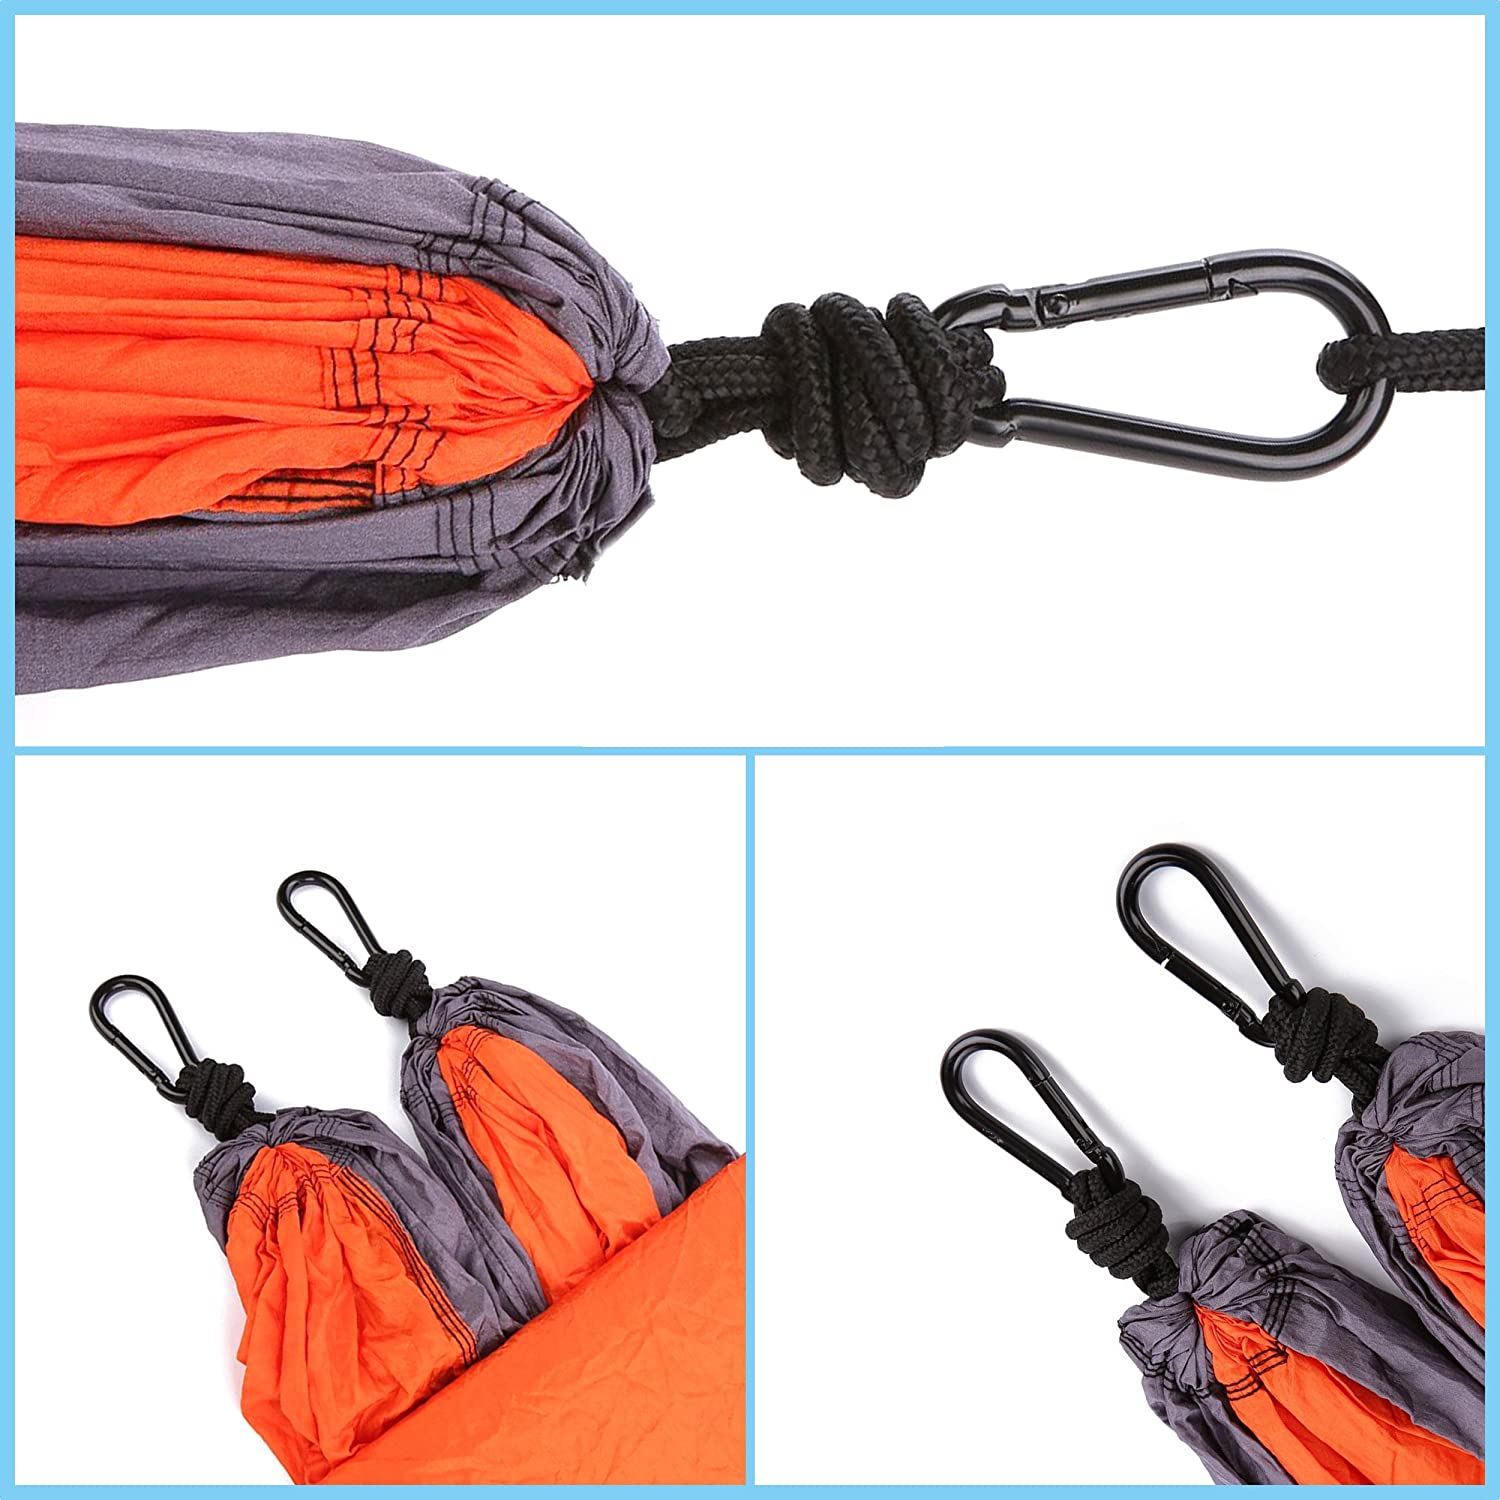 Soufull XL Hammock Straps Outdoor Tree Straps with 2 Carabiners,40 Loops Combined 20Ft Long,1400LBS Breaking Strength,Tree Friendly,Quick/&Easy Setup